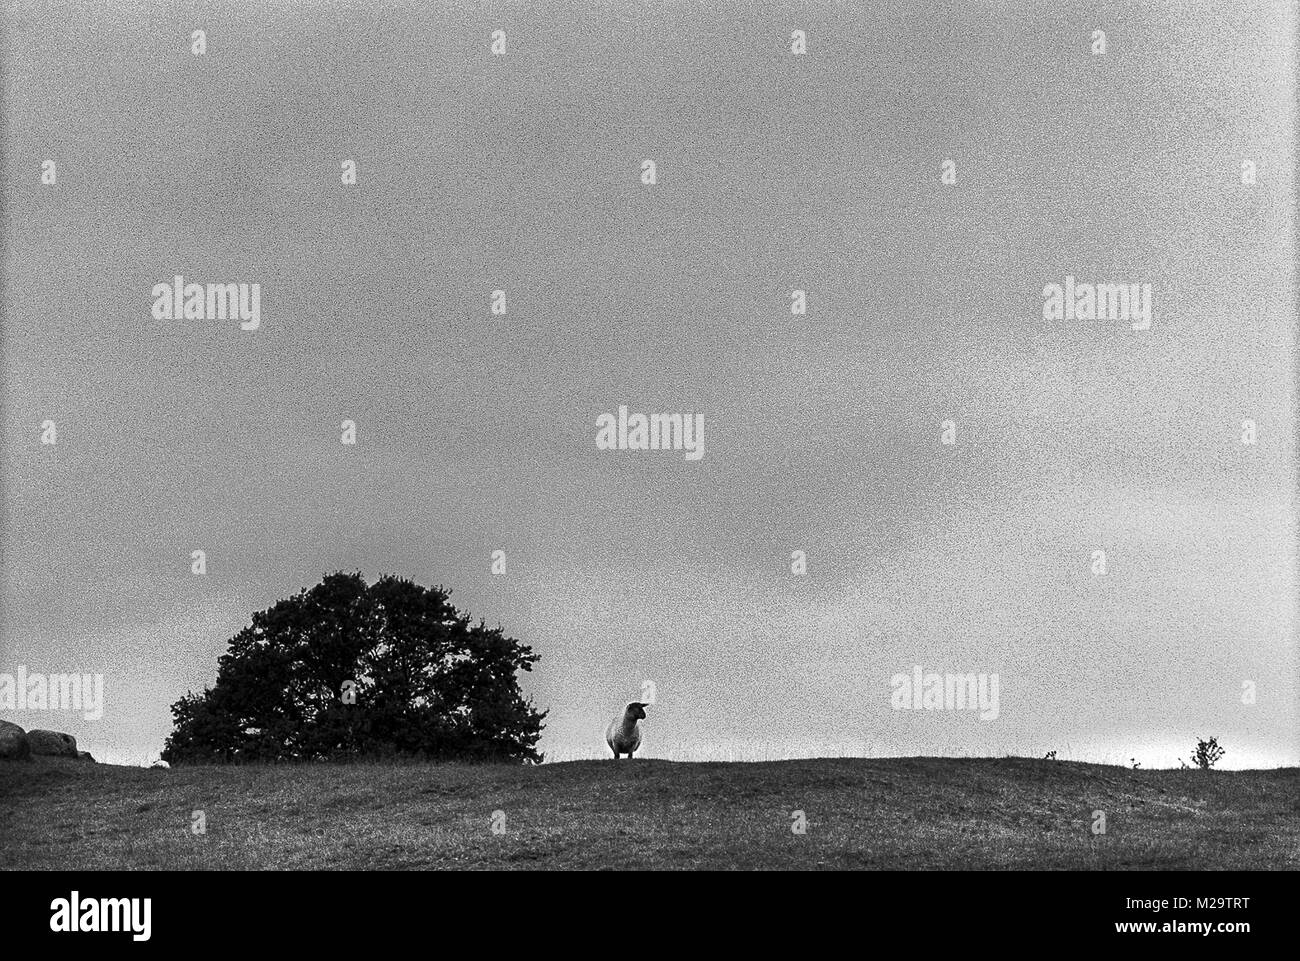 A sheep standing on a hill a looking out over it's domains with the sky behind. - Stock Image